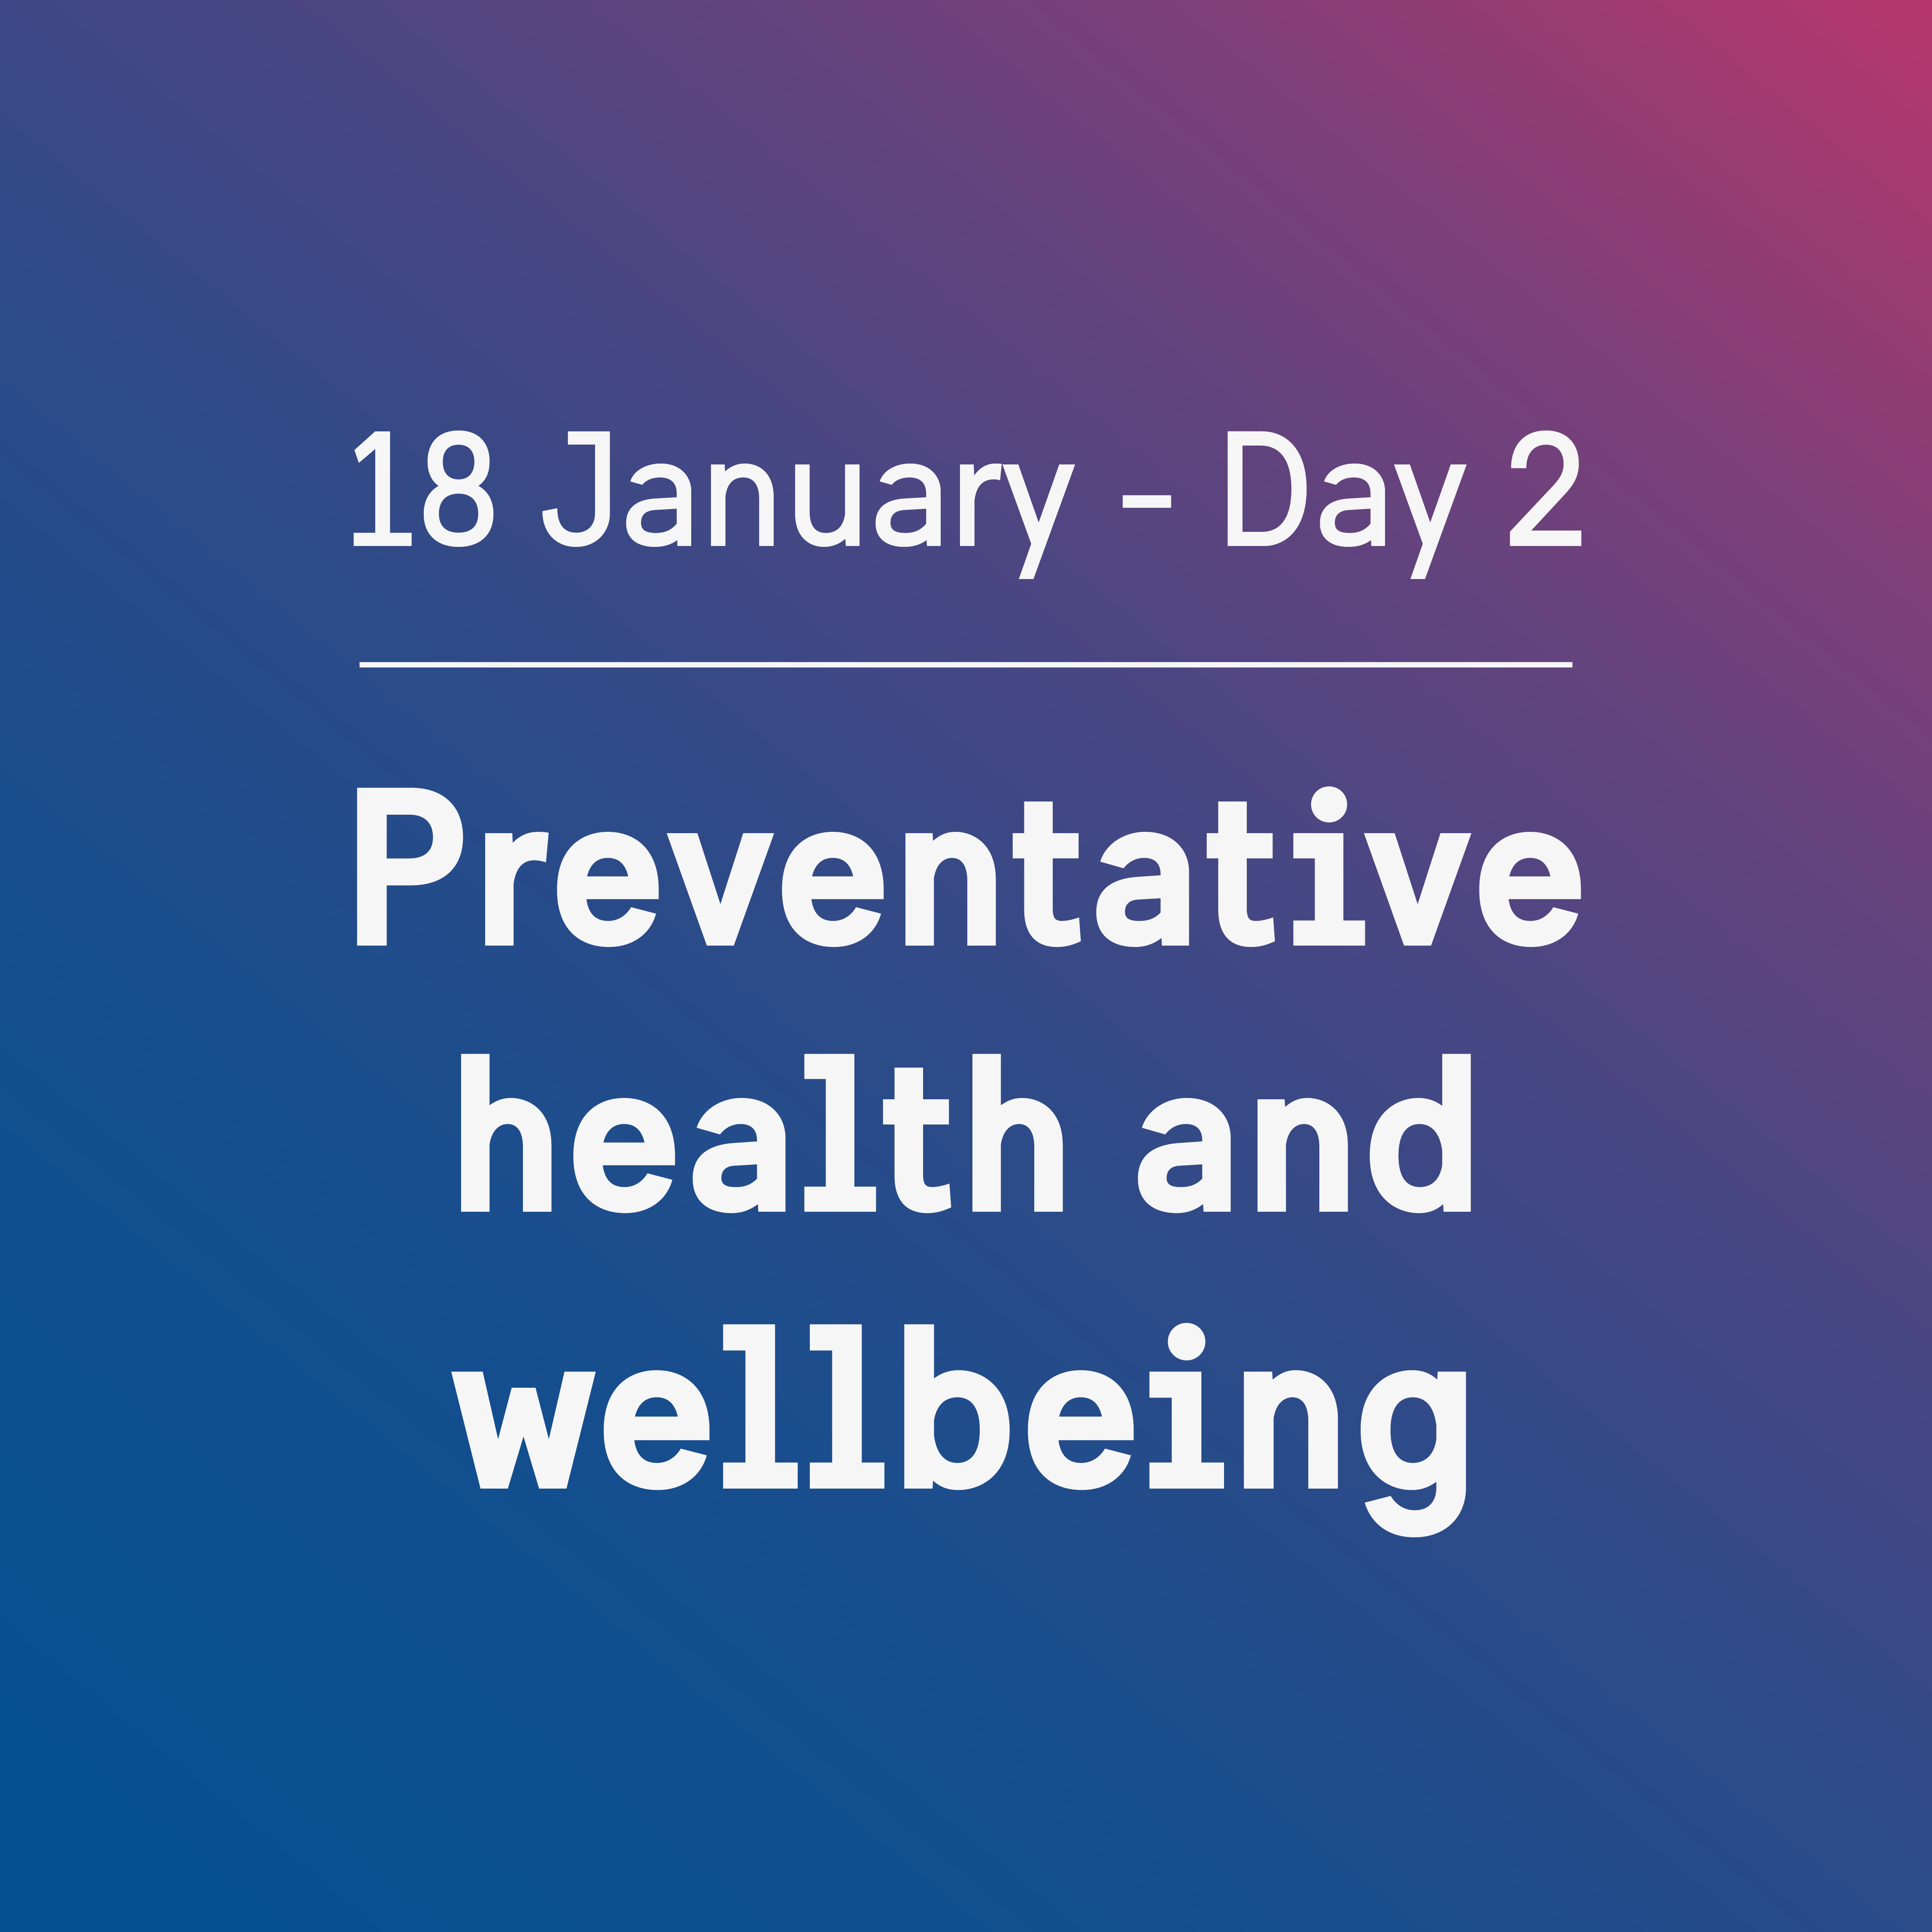 Agenda Day 2: Preventative health and wellbeing